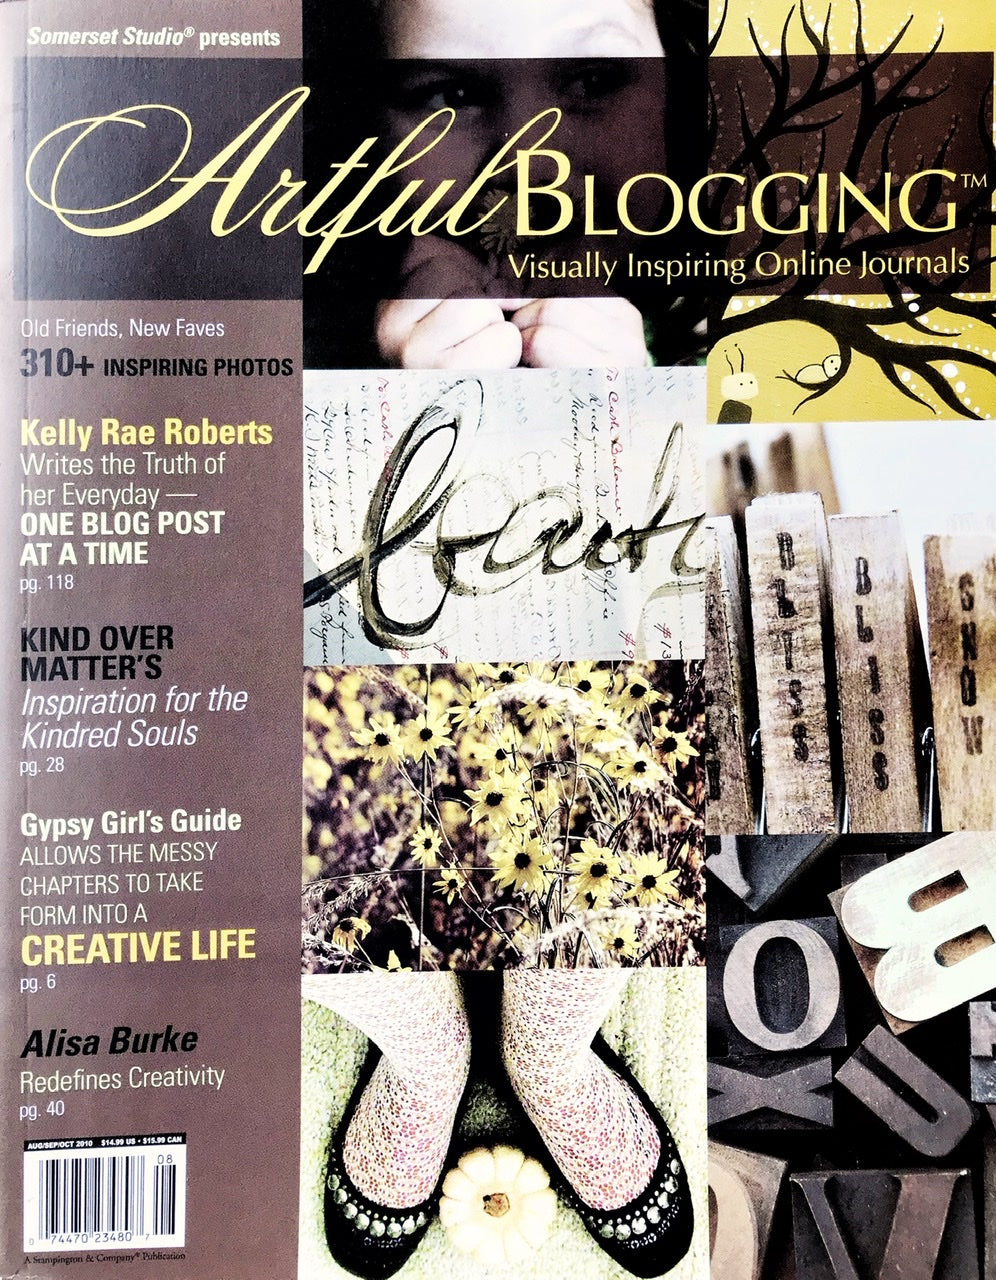 Artful Blogging Aug/Sept/Oct 2010 - Vol 4, Issue 3